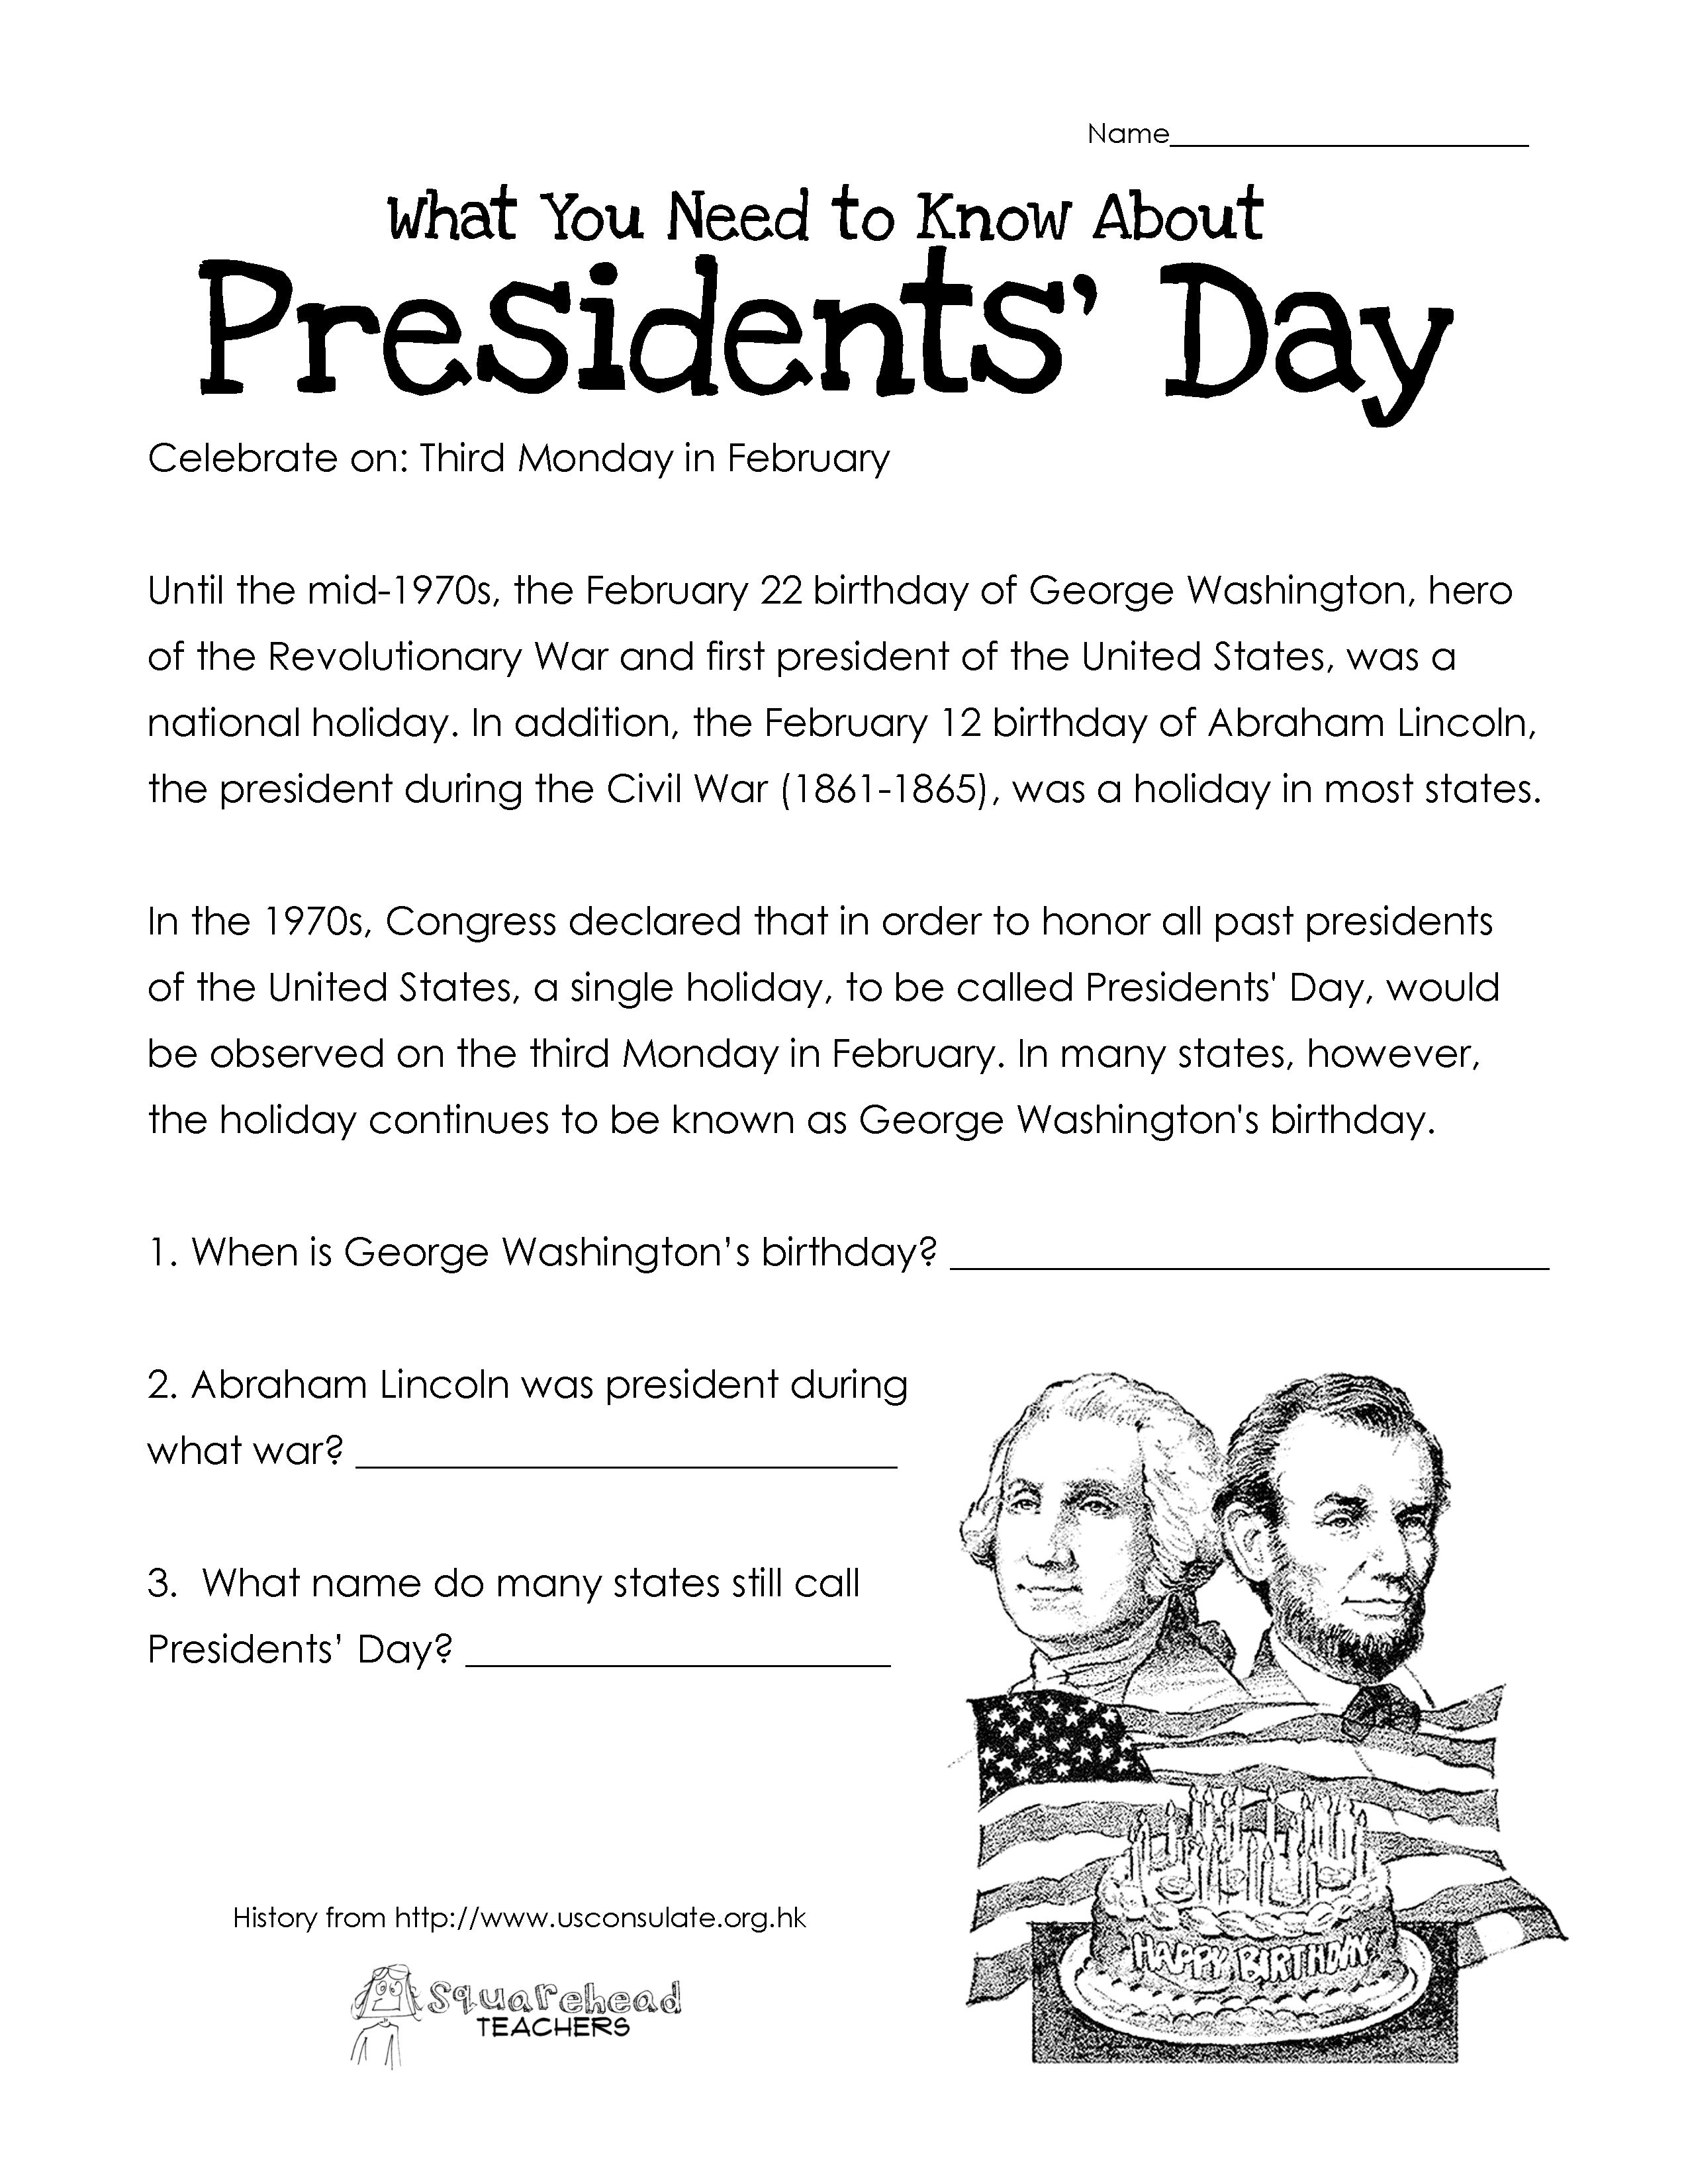 What You Need To Know About Presidents Day Easy